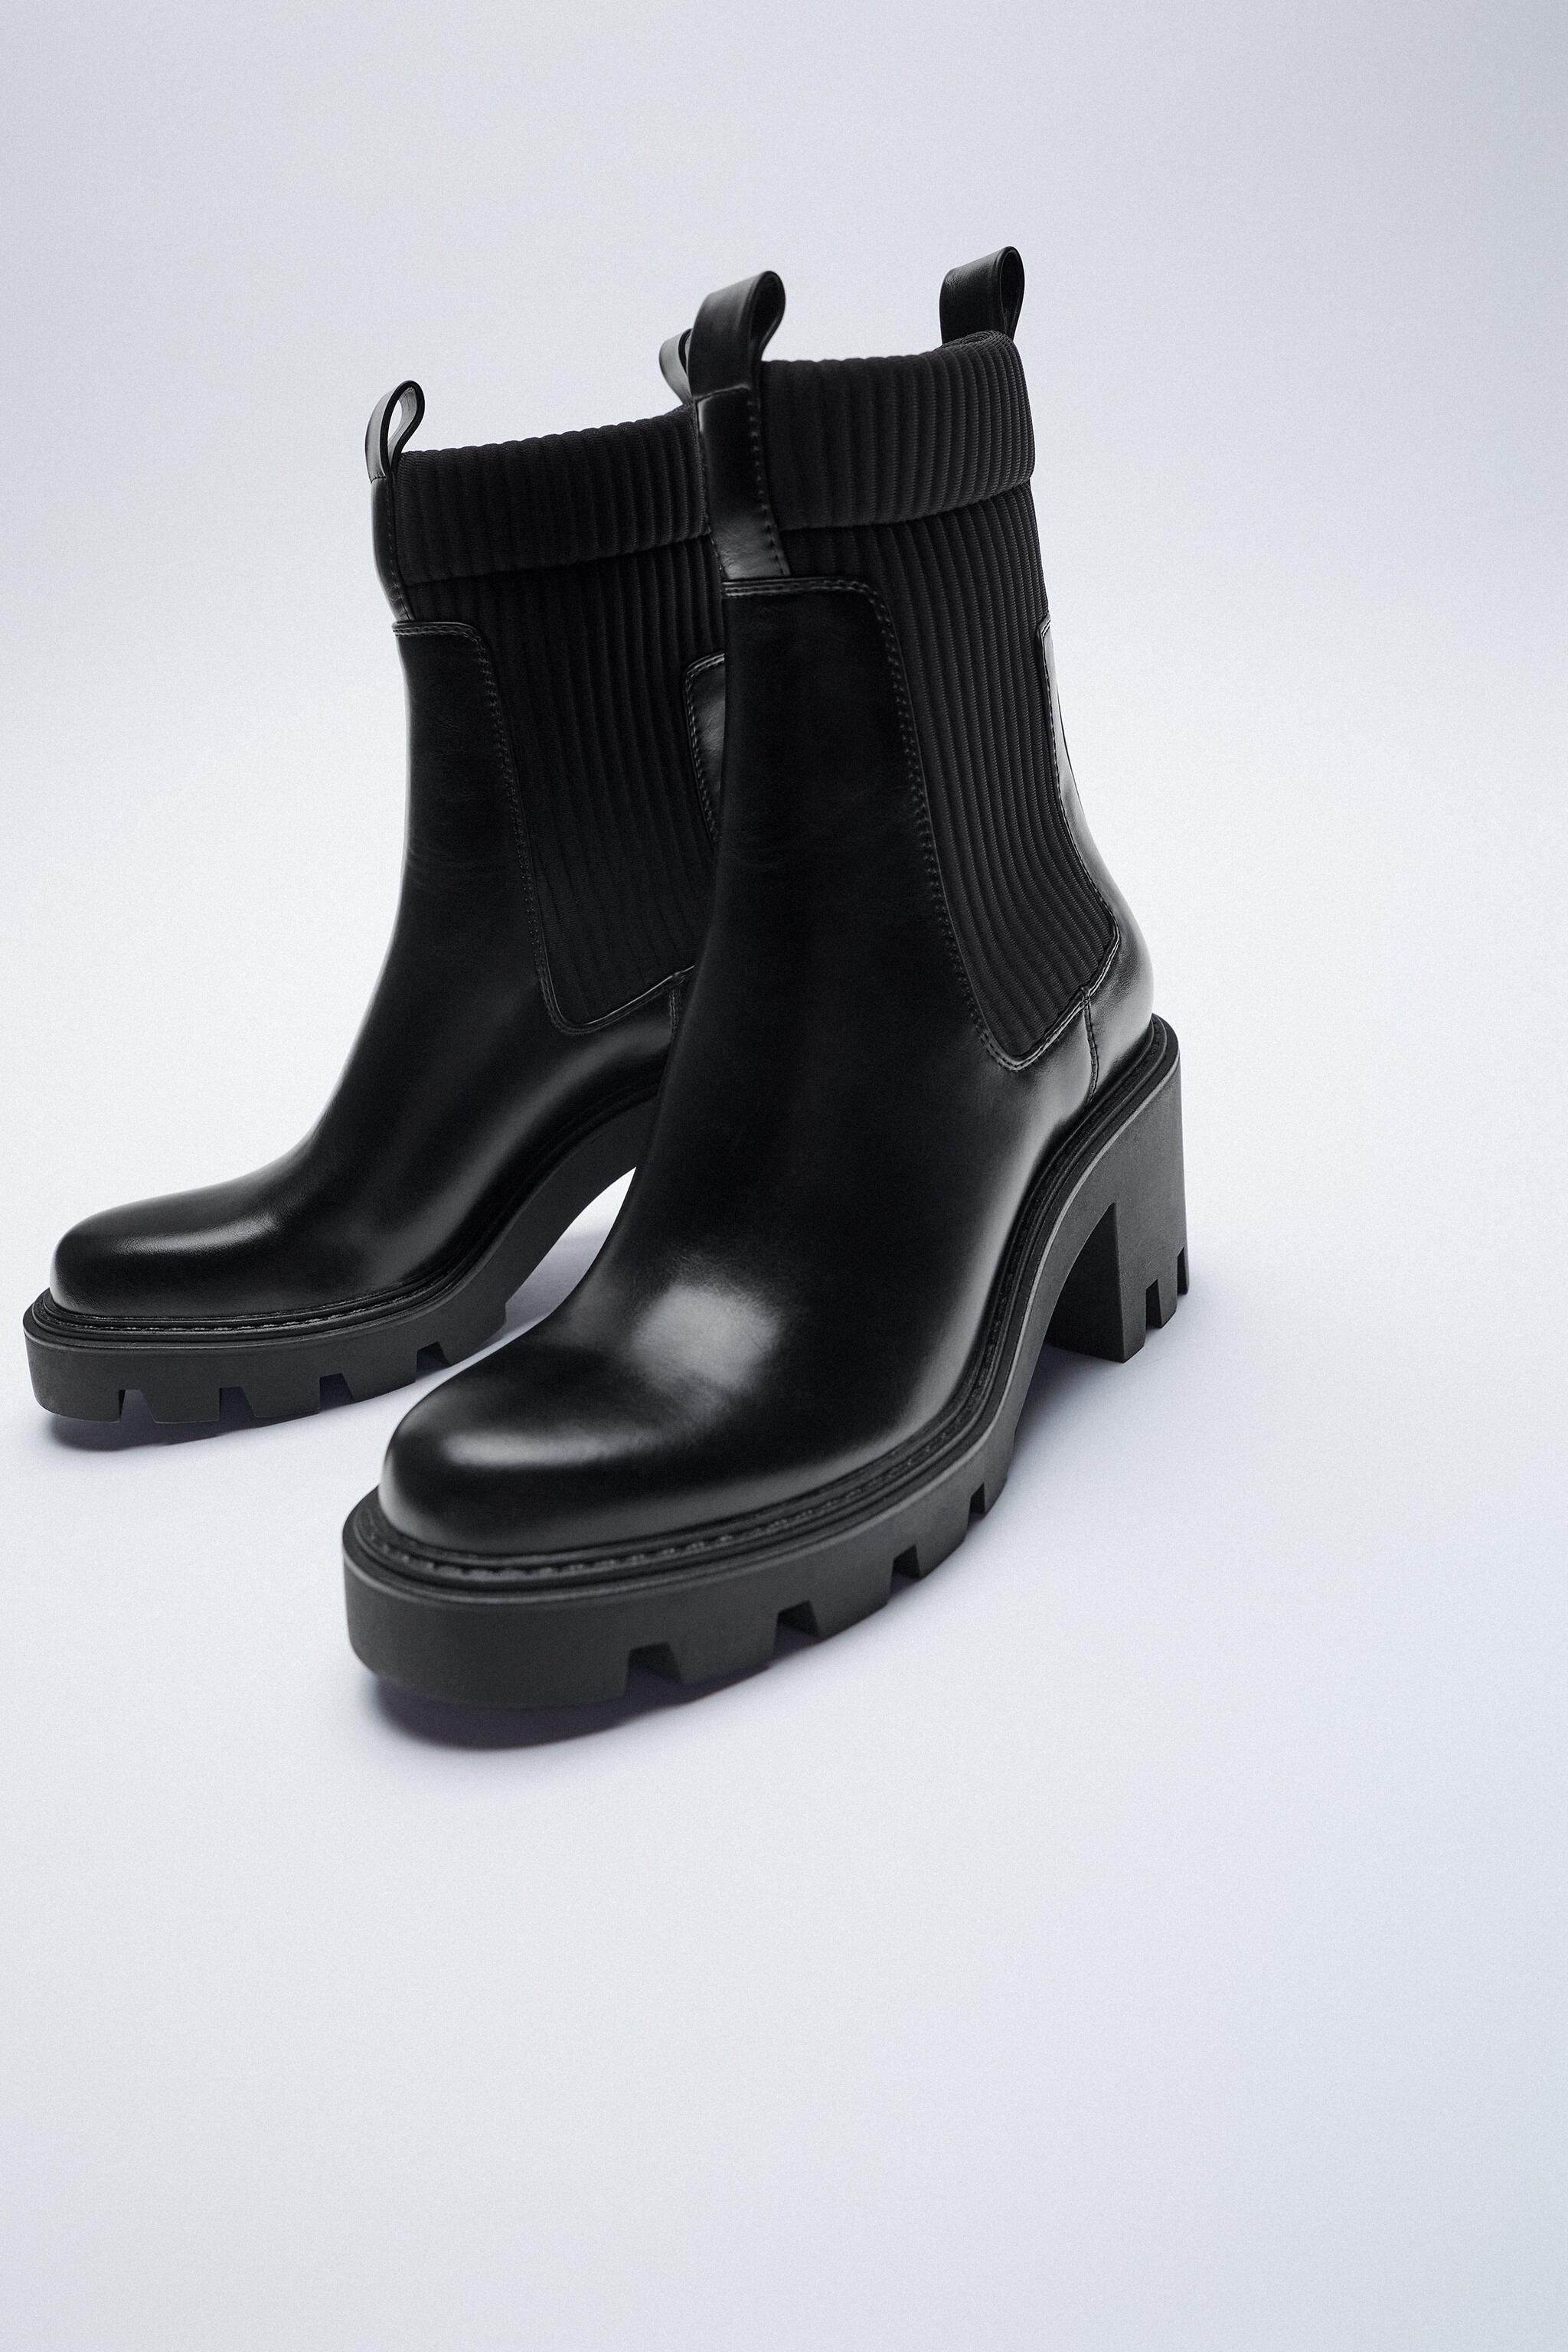 SOCK STYLE HEELED ANKLE BOOTS WITH LUG SOLES 1